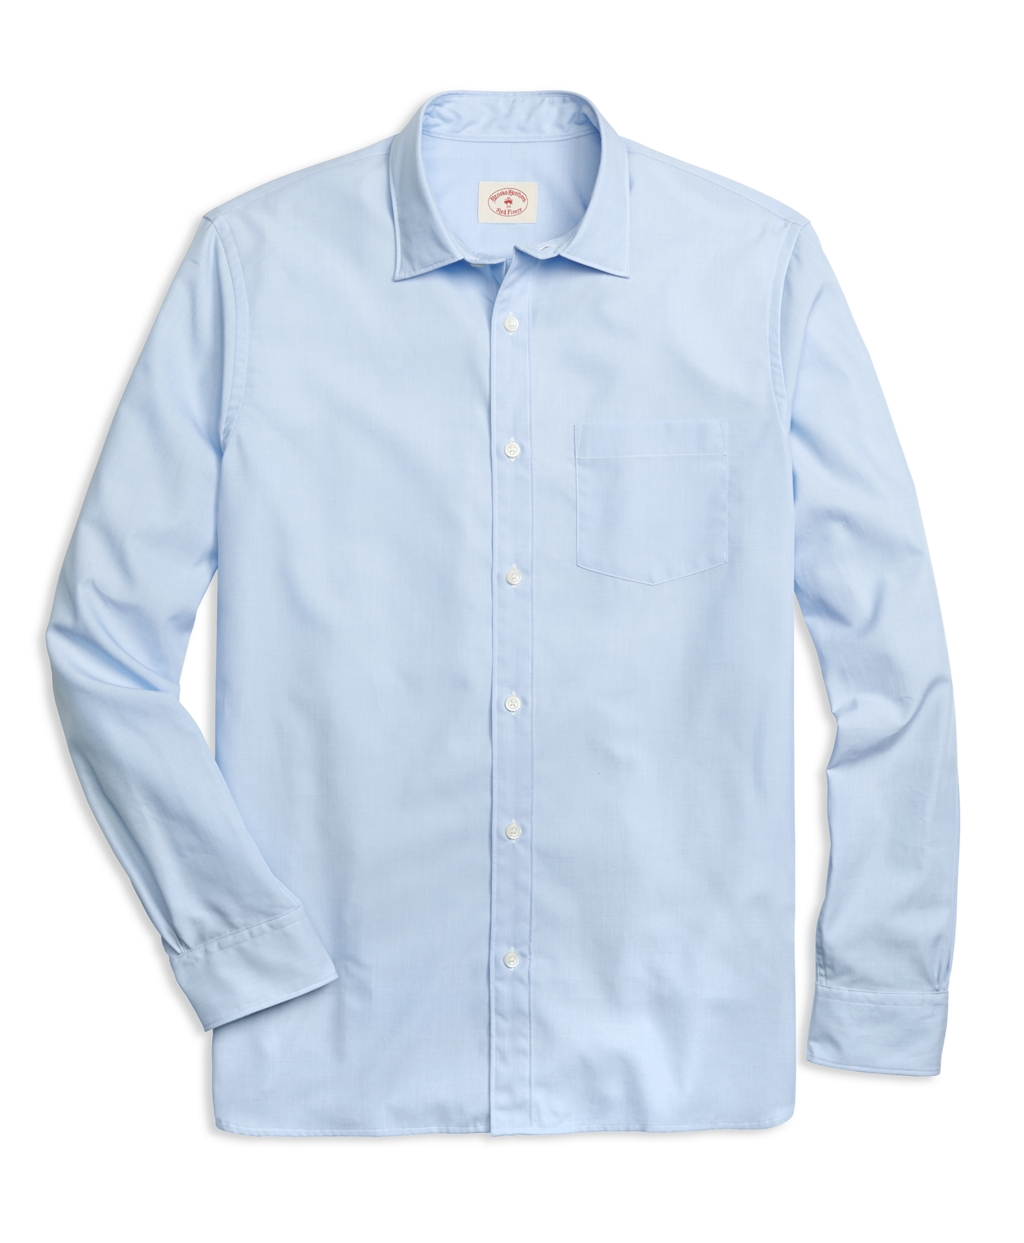 Lyst brooks brothers spread collar sport shirt in blue for Men s spread collar shirts